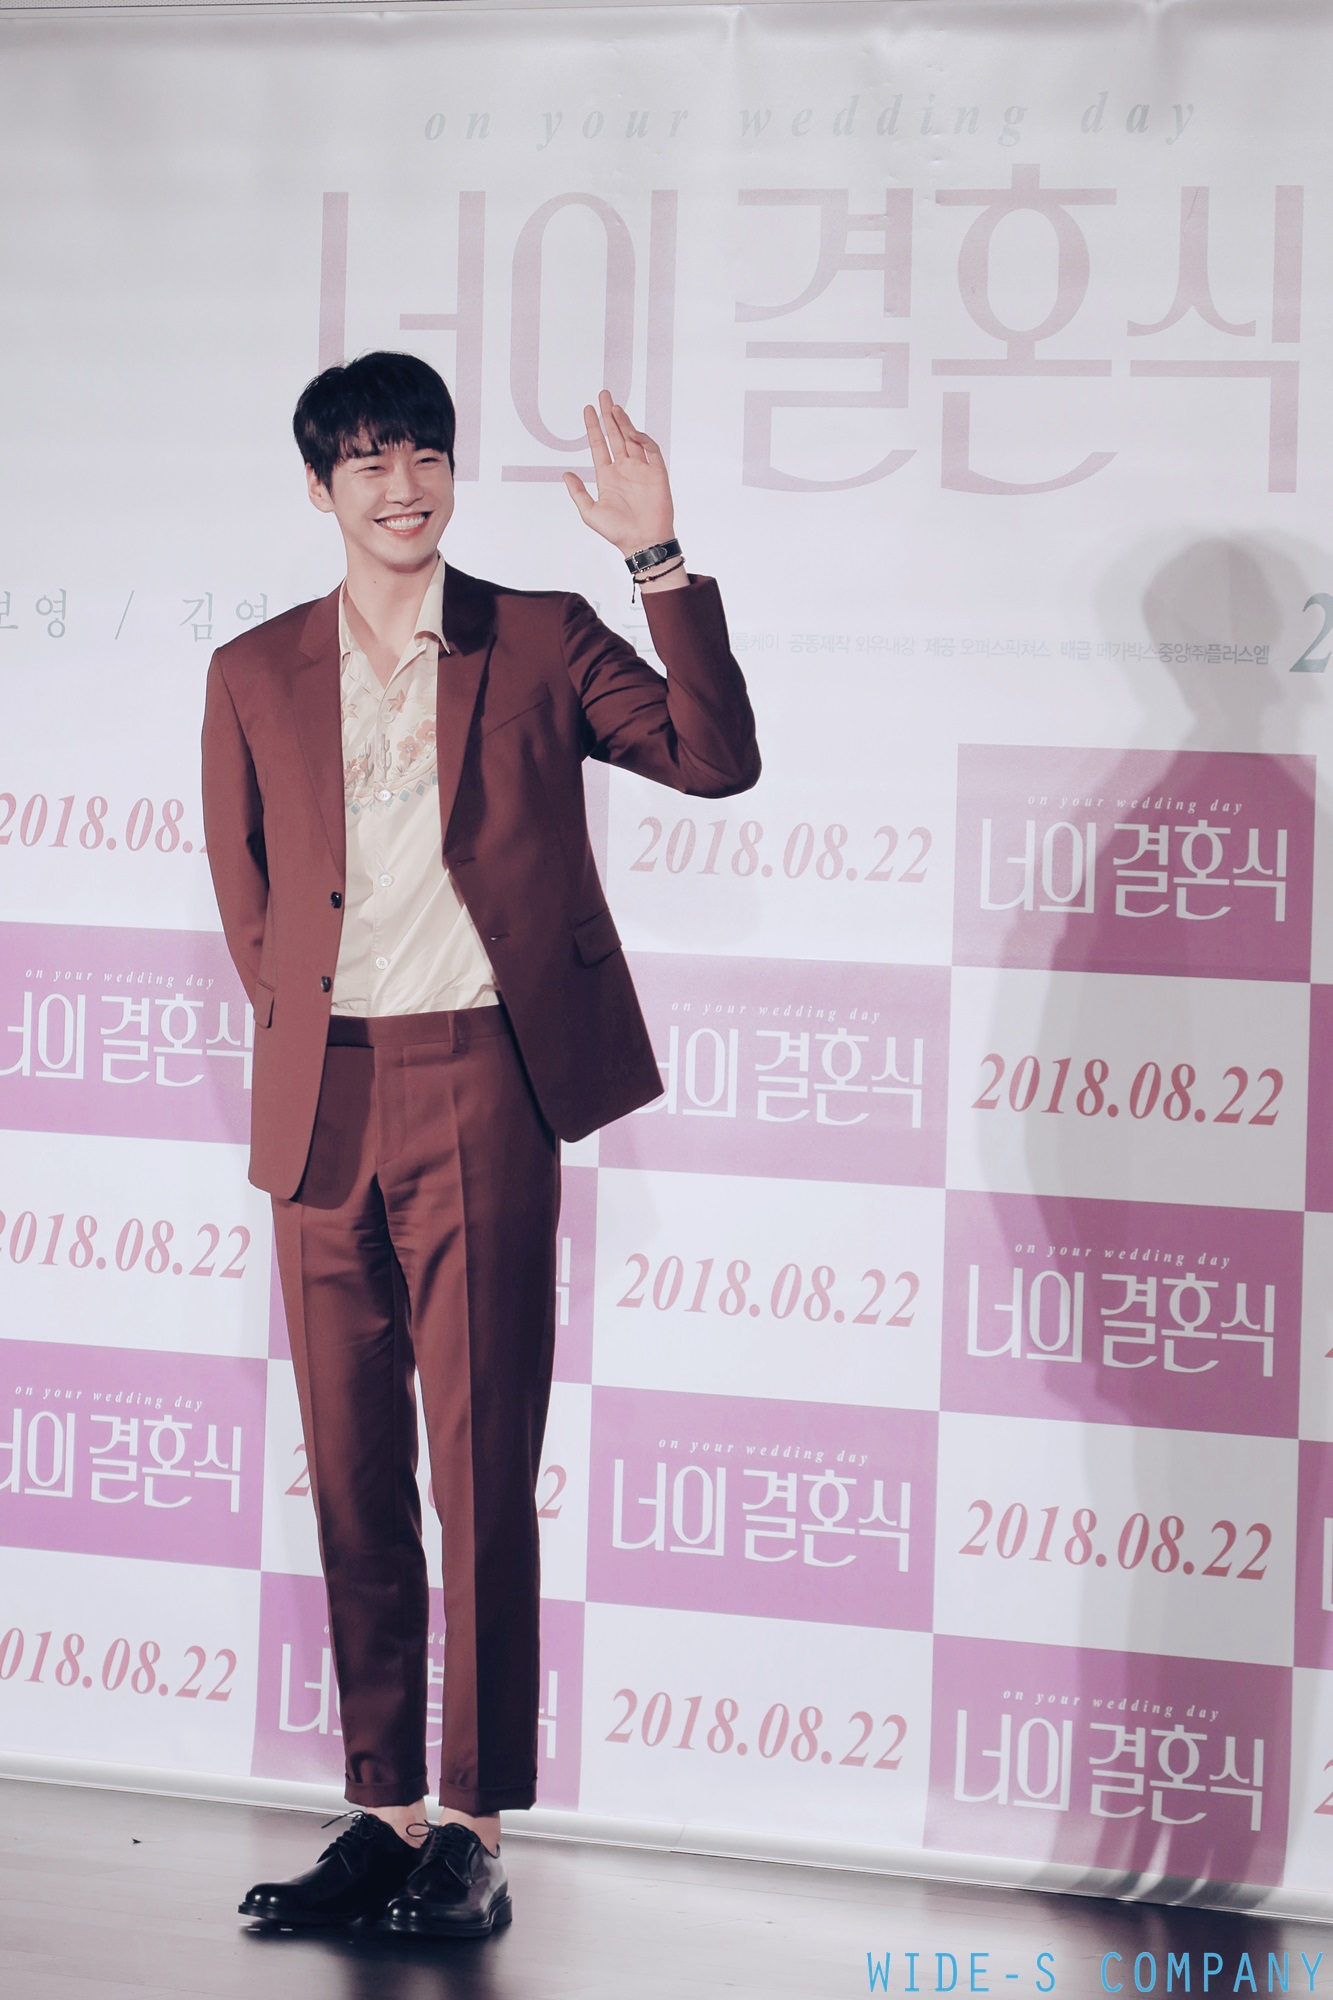 korean actors tall, actors height, actors 187 cm, kim youngkwang